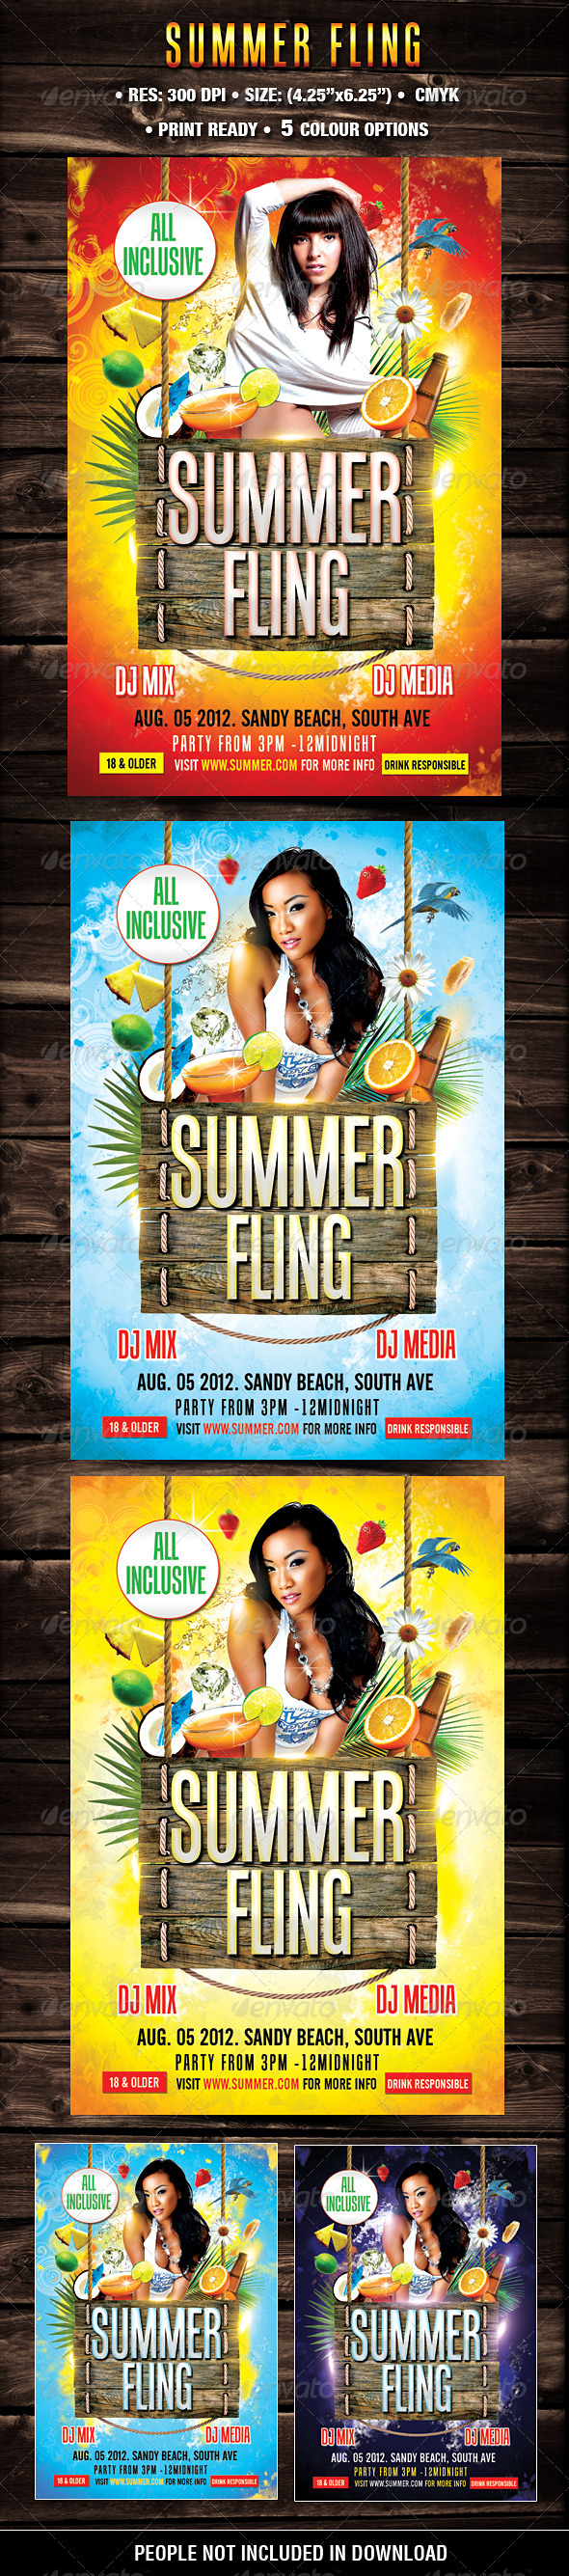 GraphicRiver Summer Fling Template 2210603